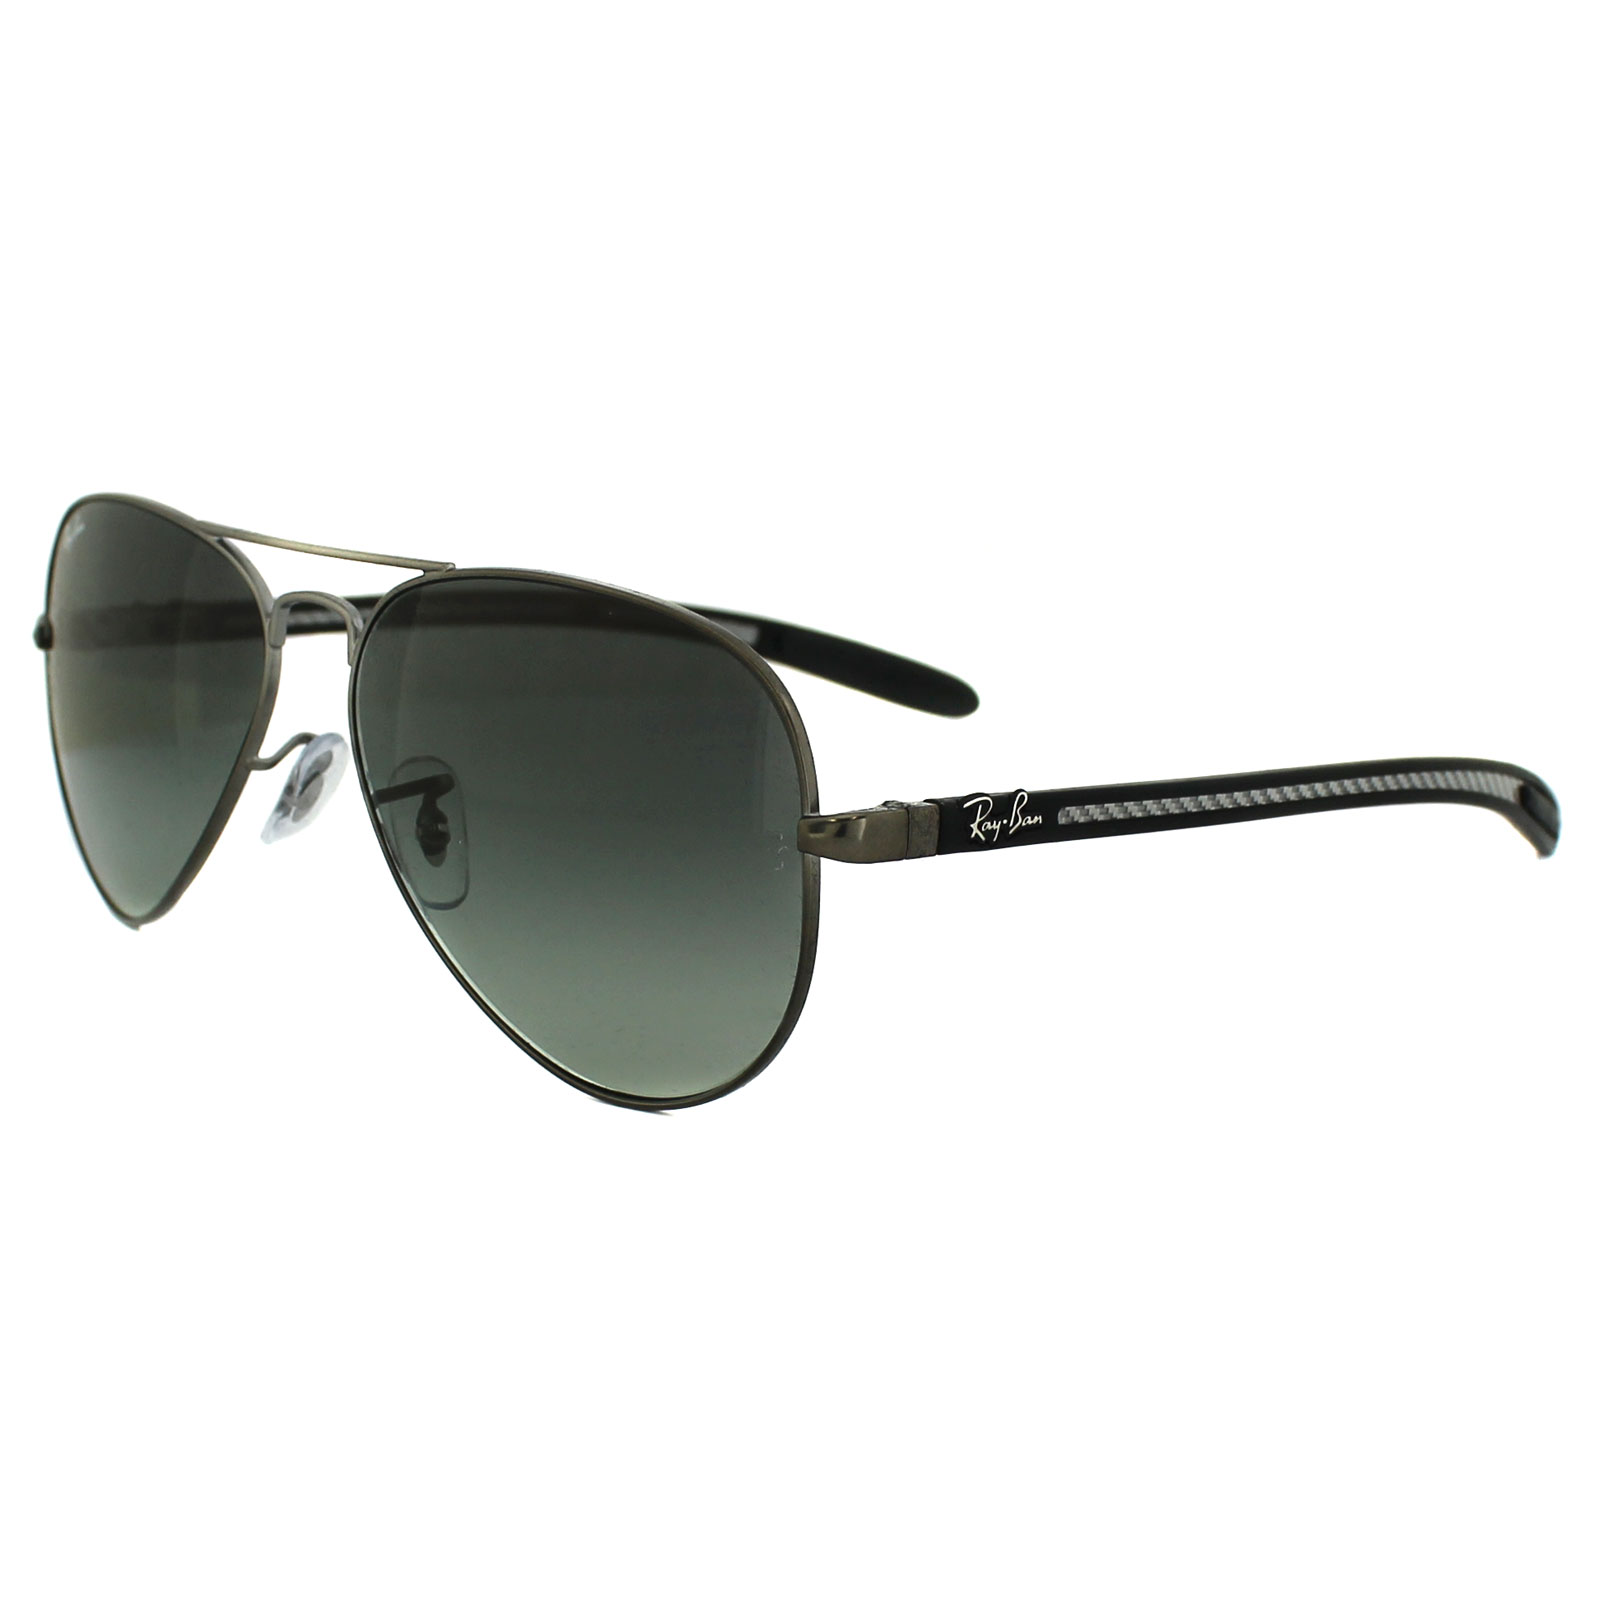 e02b98ec1b1 Ray Ban Rb8307 58 Polarized